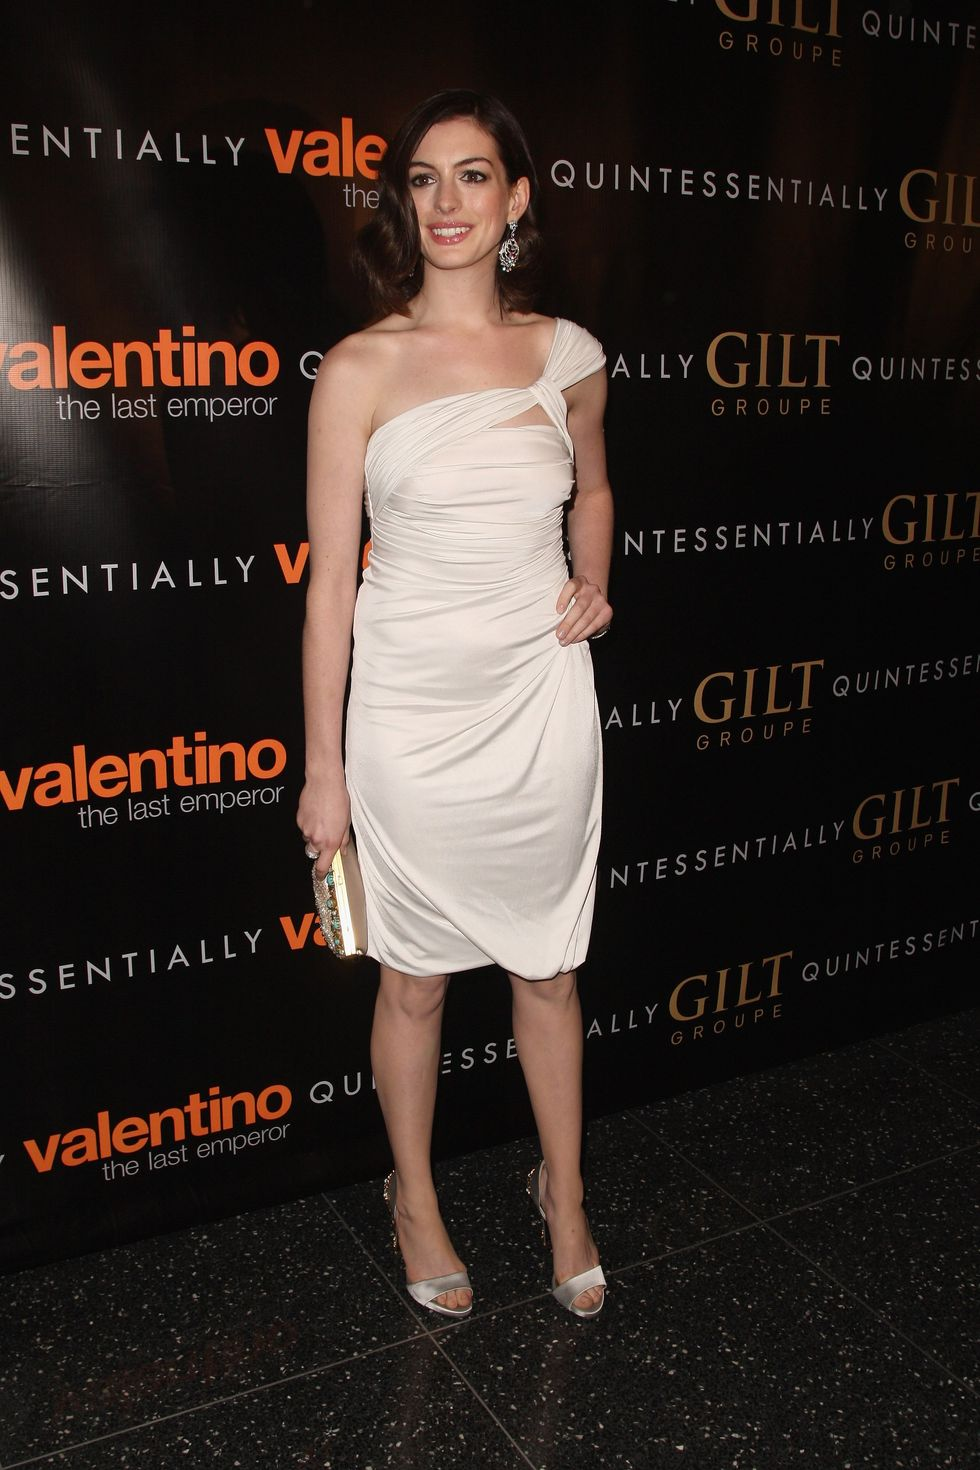 anne-hathaway-valentino-the-last-emperor-premiere-in-new-york-01